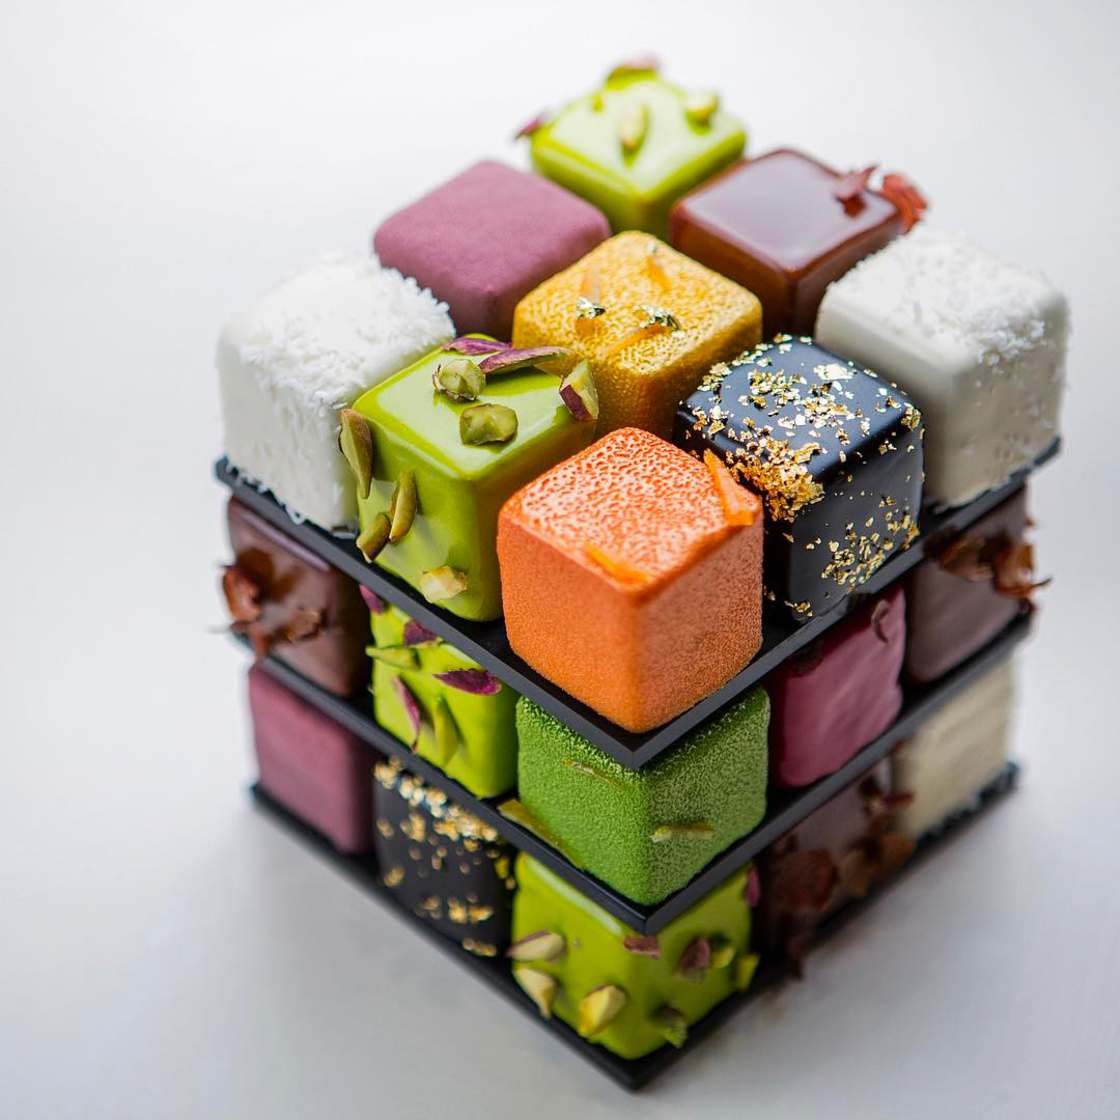 Rubik's Cake – An incredibly appetizing geometric pastry! (20 pics)